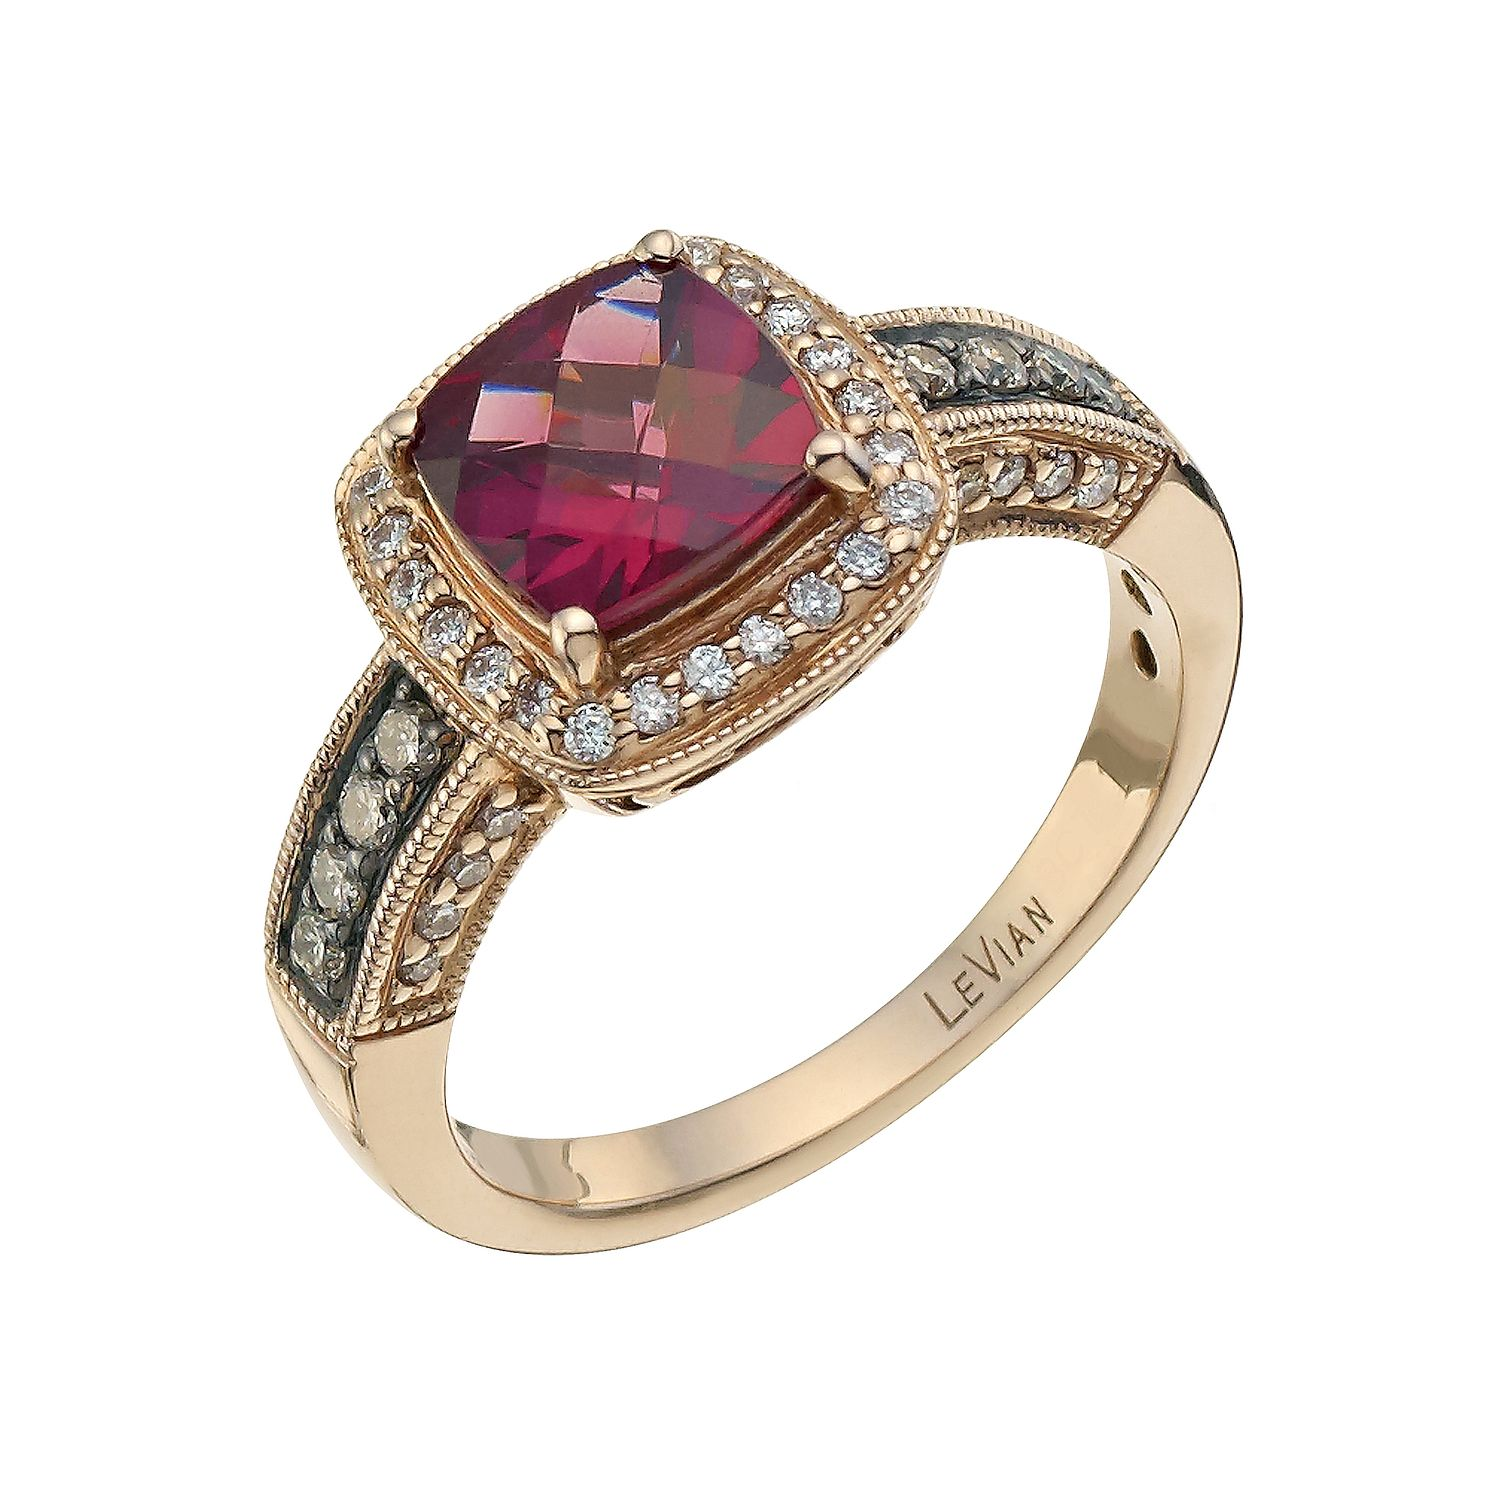 products jewellers diamond halo dublin garnet rhodolite gold rings white campbell engagement ring ireland